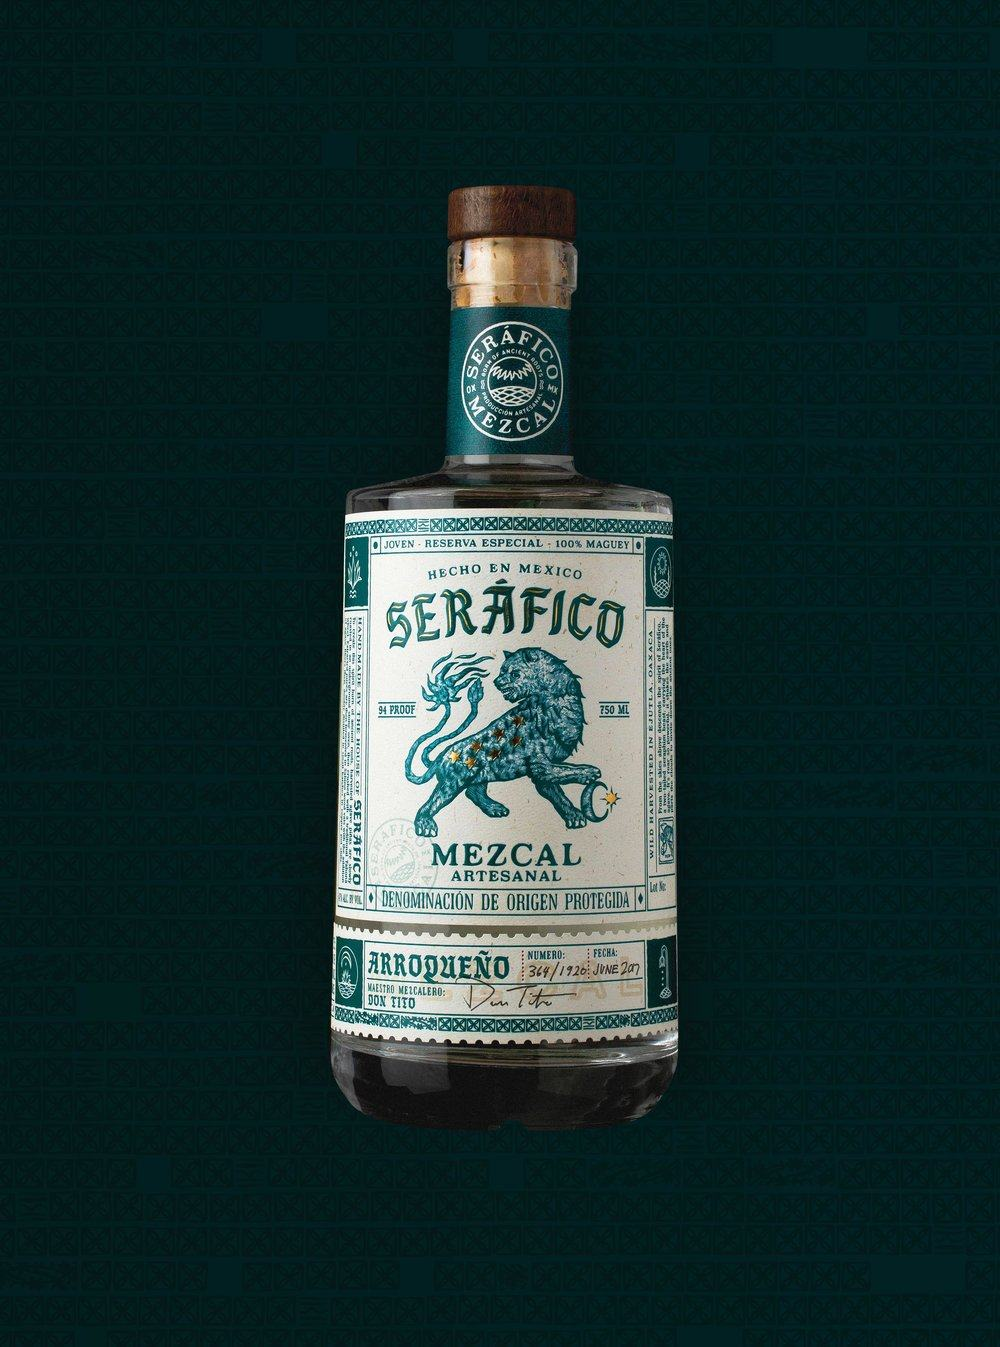 serafico-arroqueno-bottle.jpg